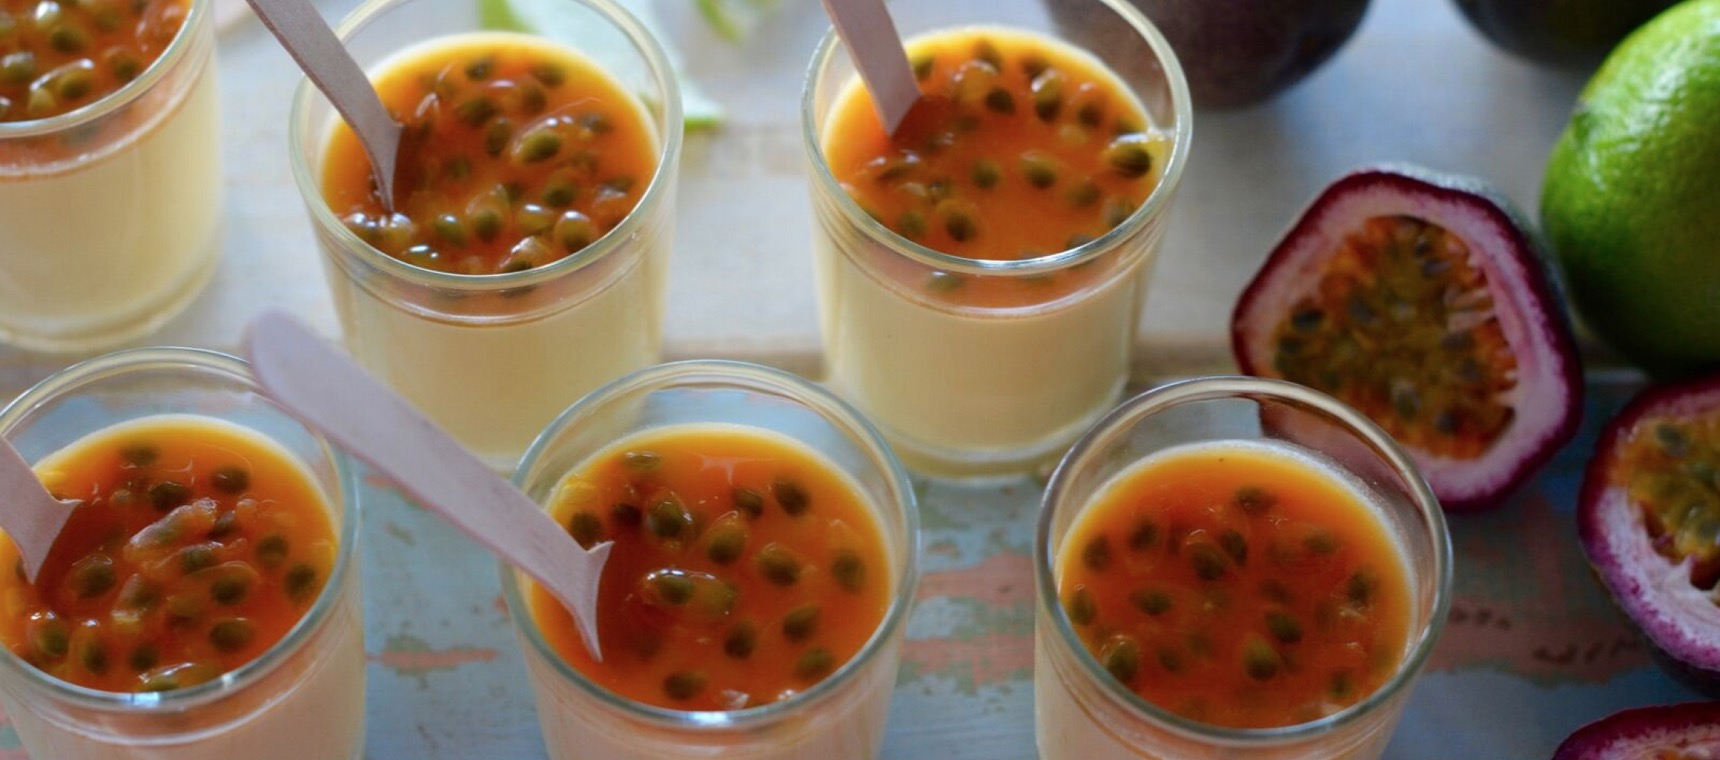 Passionfruit Puddings